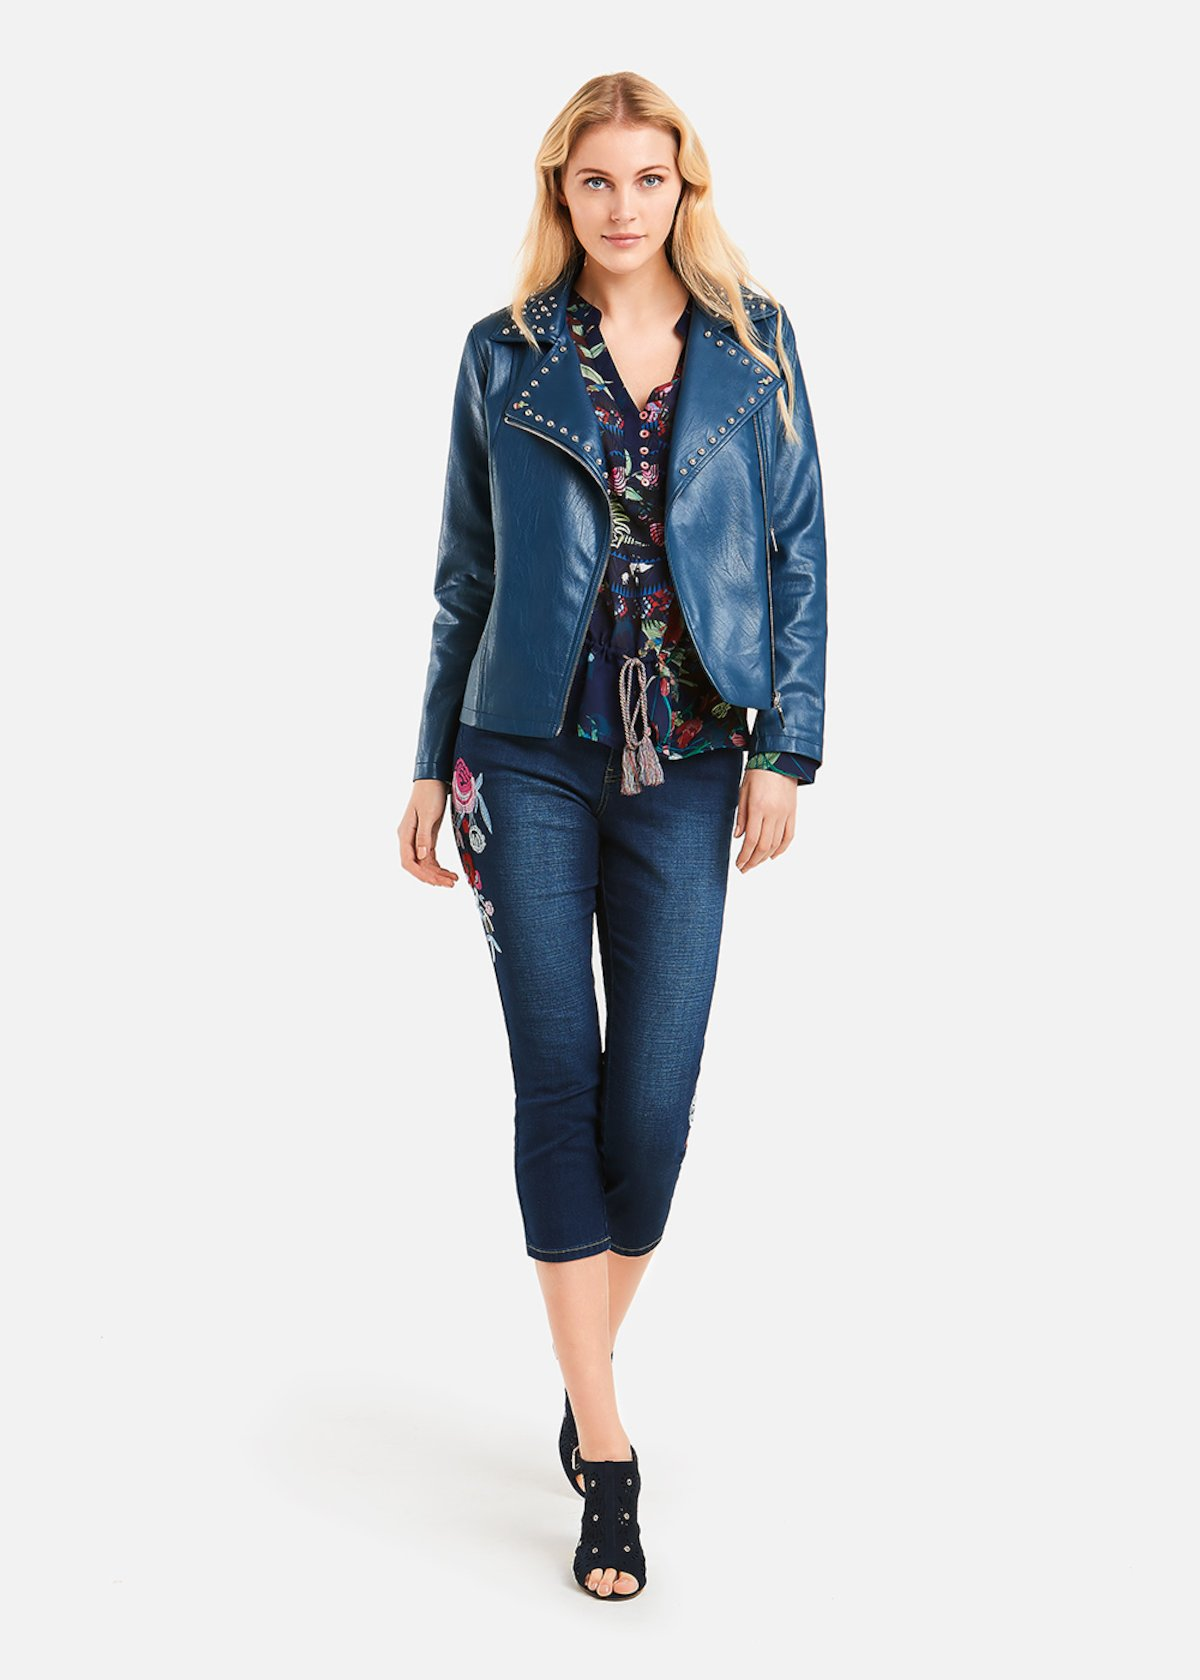 Giudit jacket with studs on collar - Blue